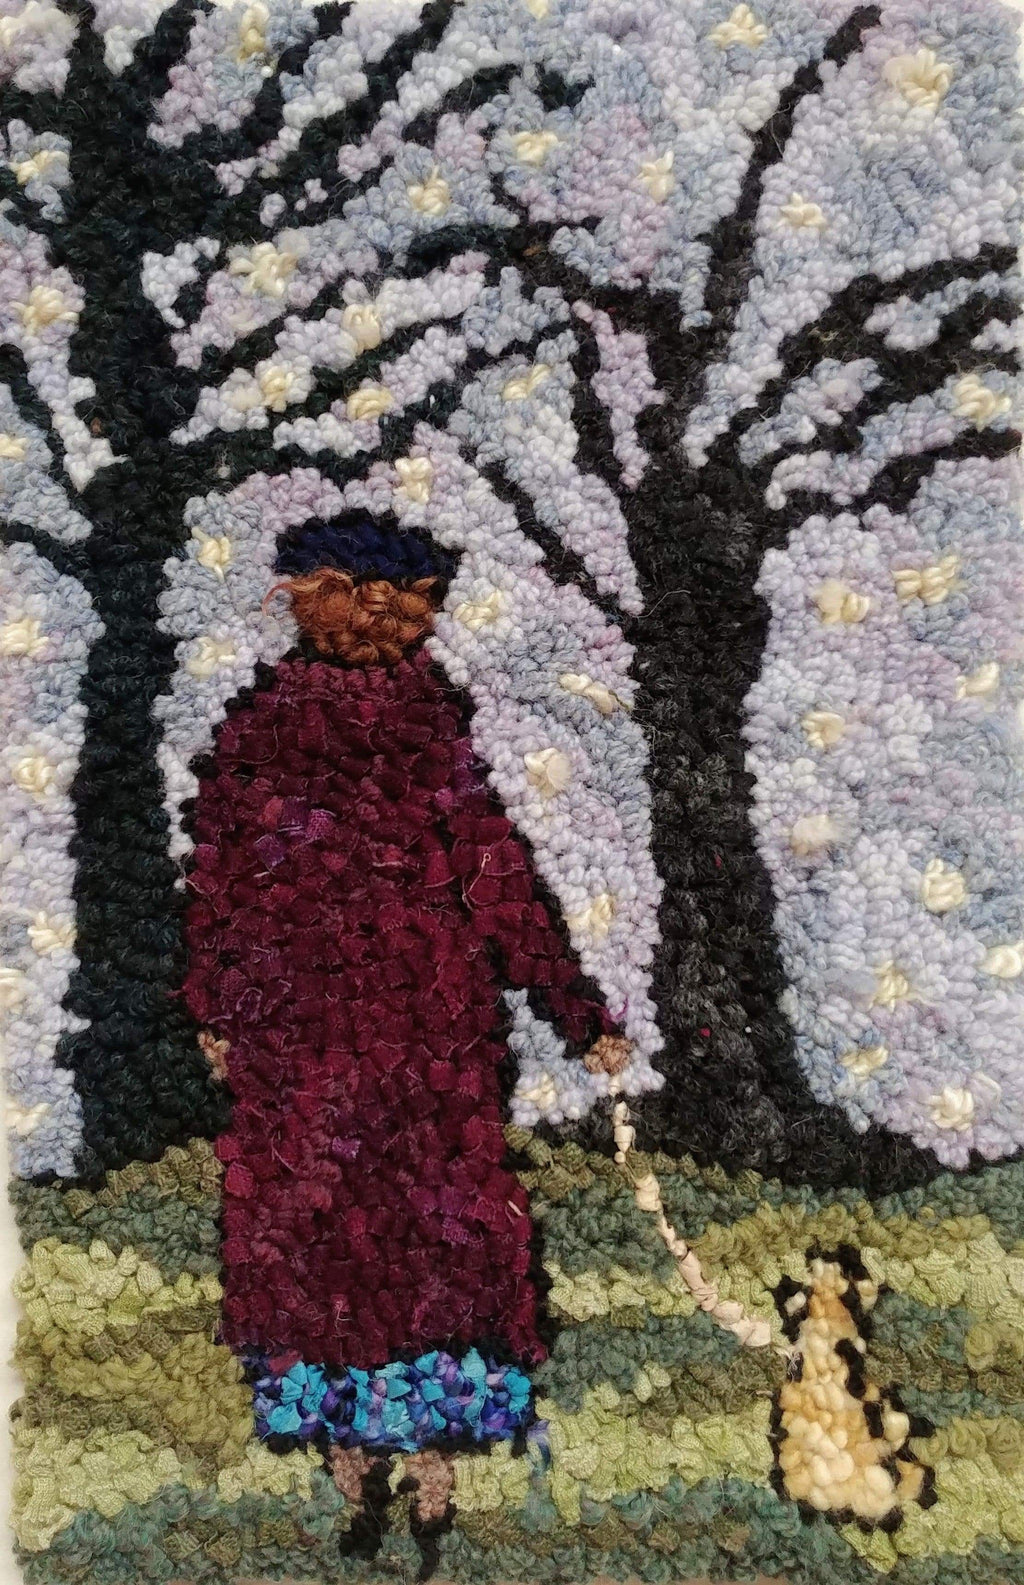 "update alt-text with template Lady and Her Dog - Rug Hooking Kit 11"" x 17""-Kits-Deanne Fitzpatrick Rug Hooking Studio-Rug Hooking Kit -Rug Hooking Pattern -Rug Hooking -Deanne Fitzpatrick Rug Hooking Studio -Is rug hooking the same as punch needle?"